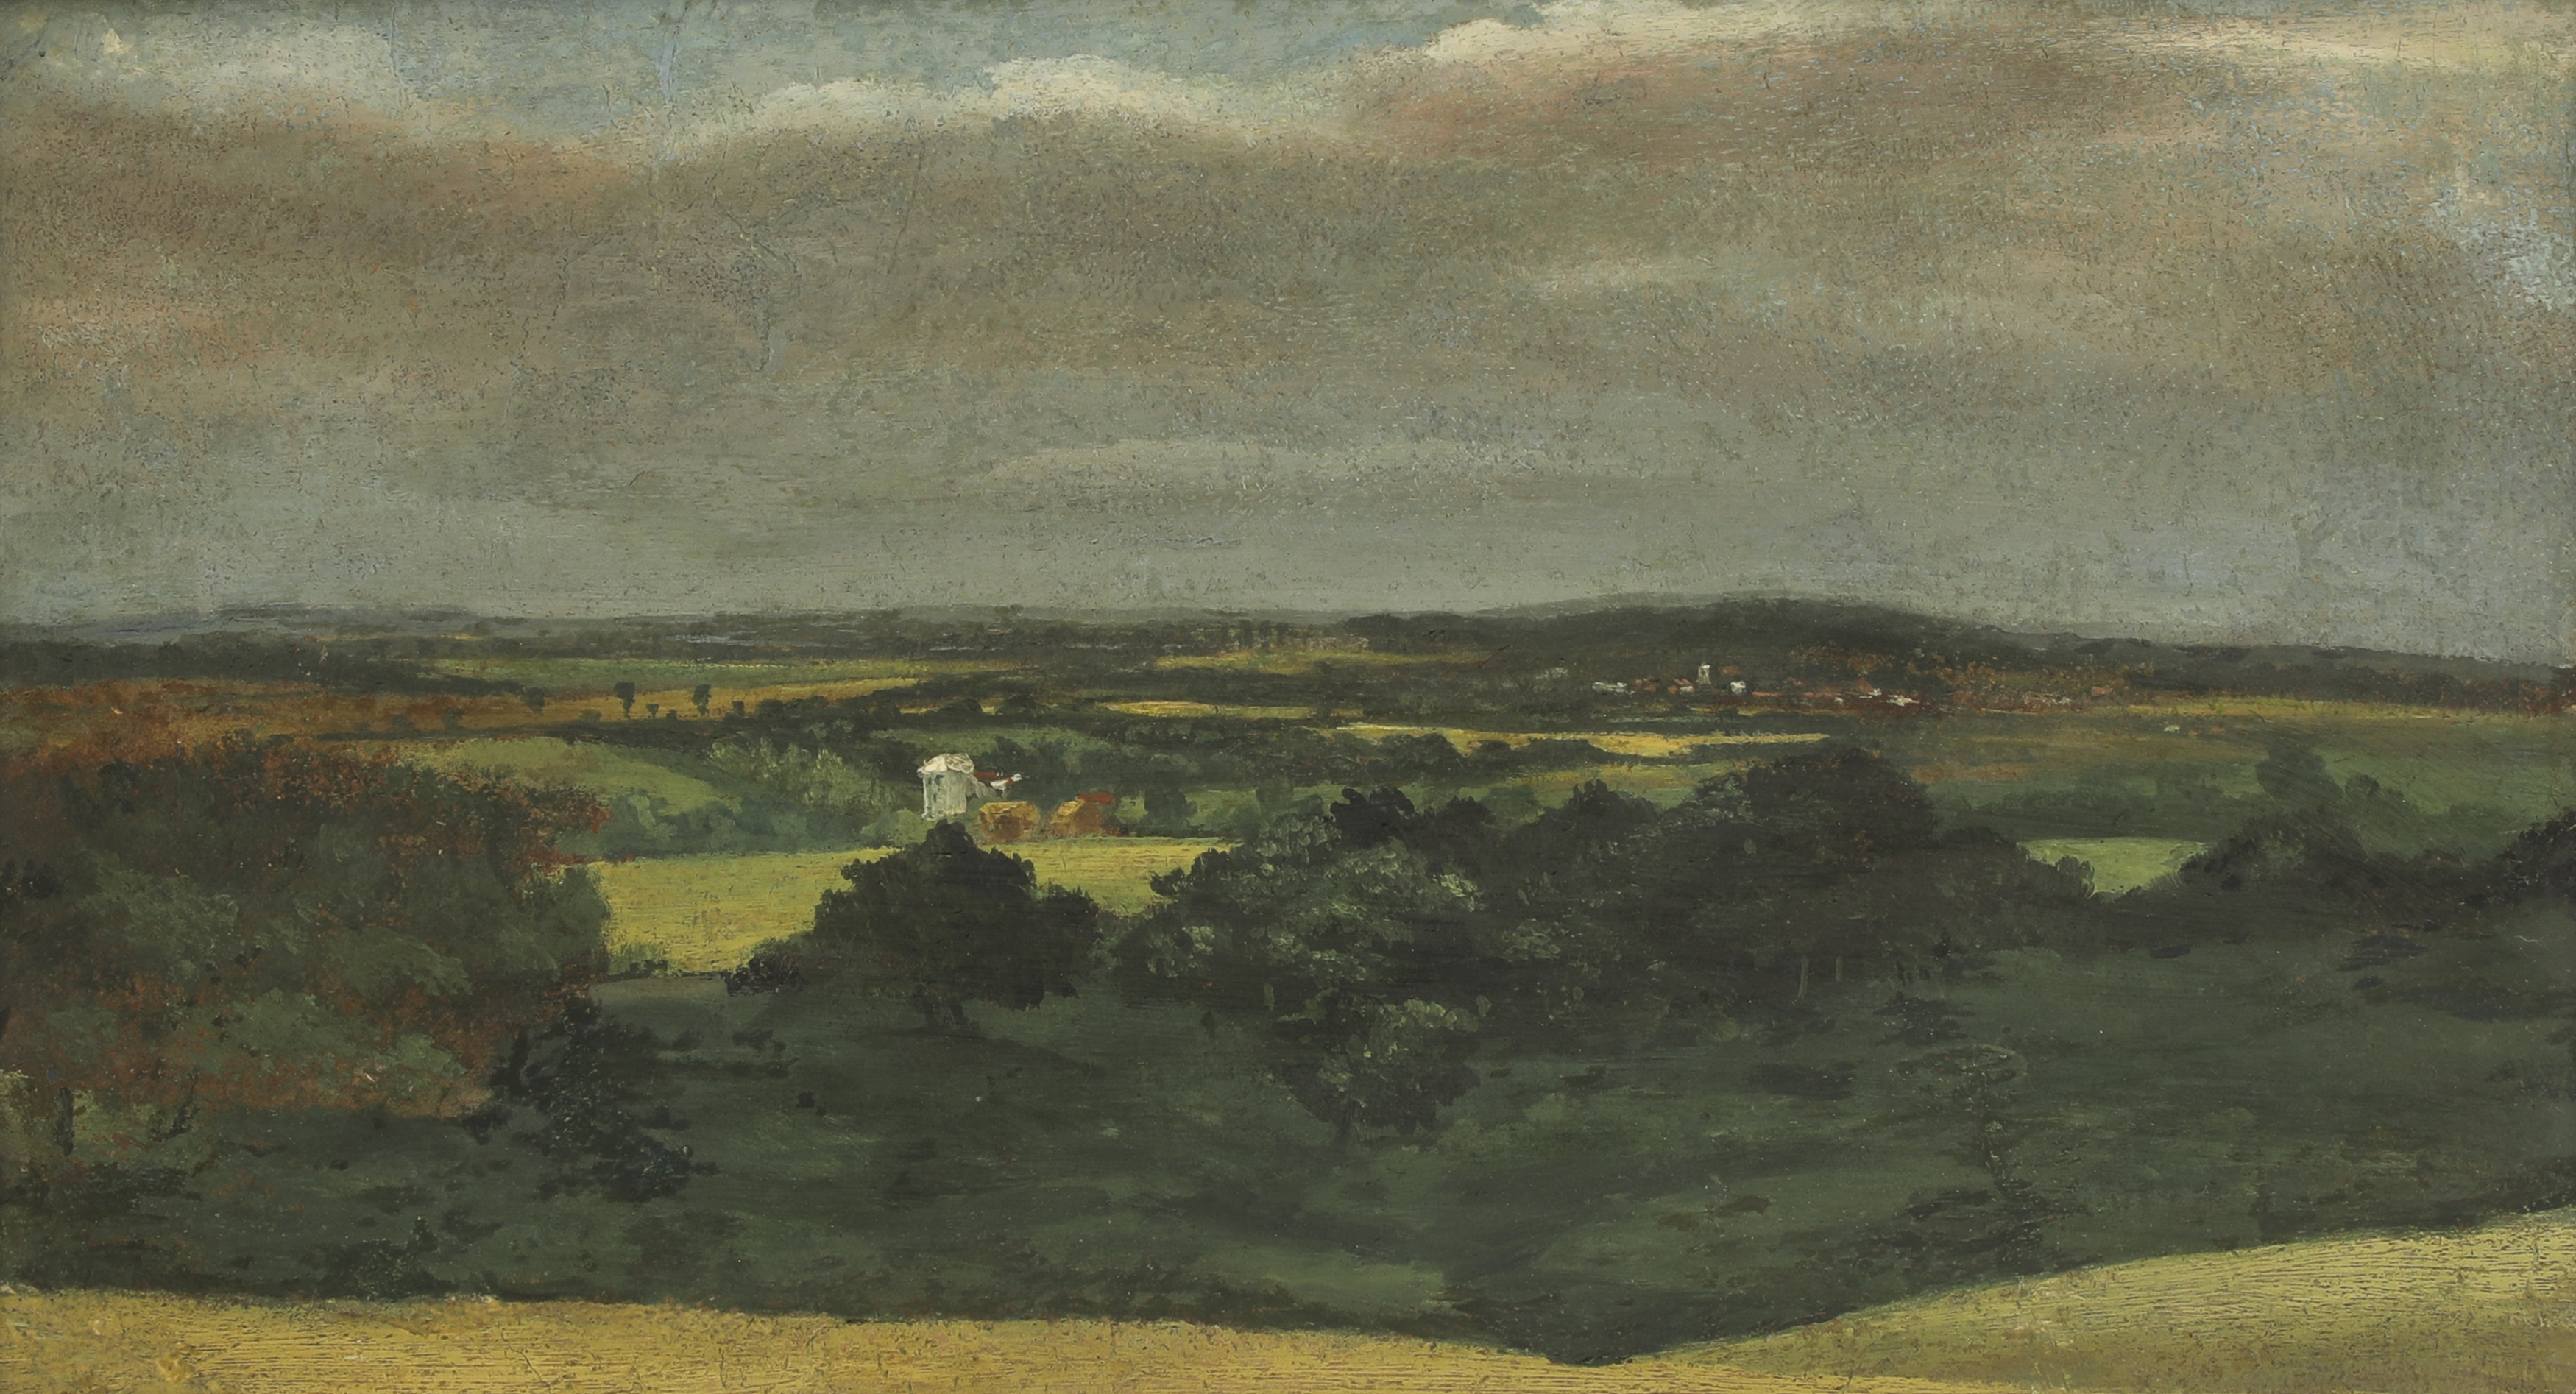 John Constable RA, Dedham Vale with Brantham Mill